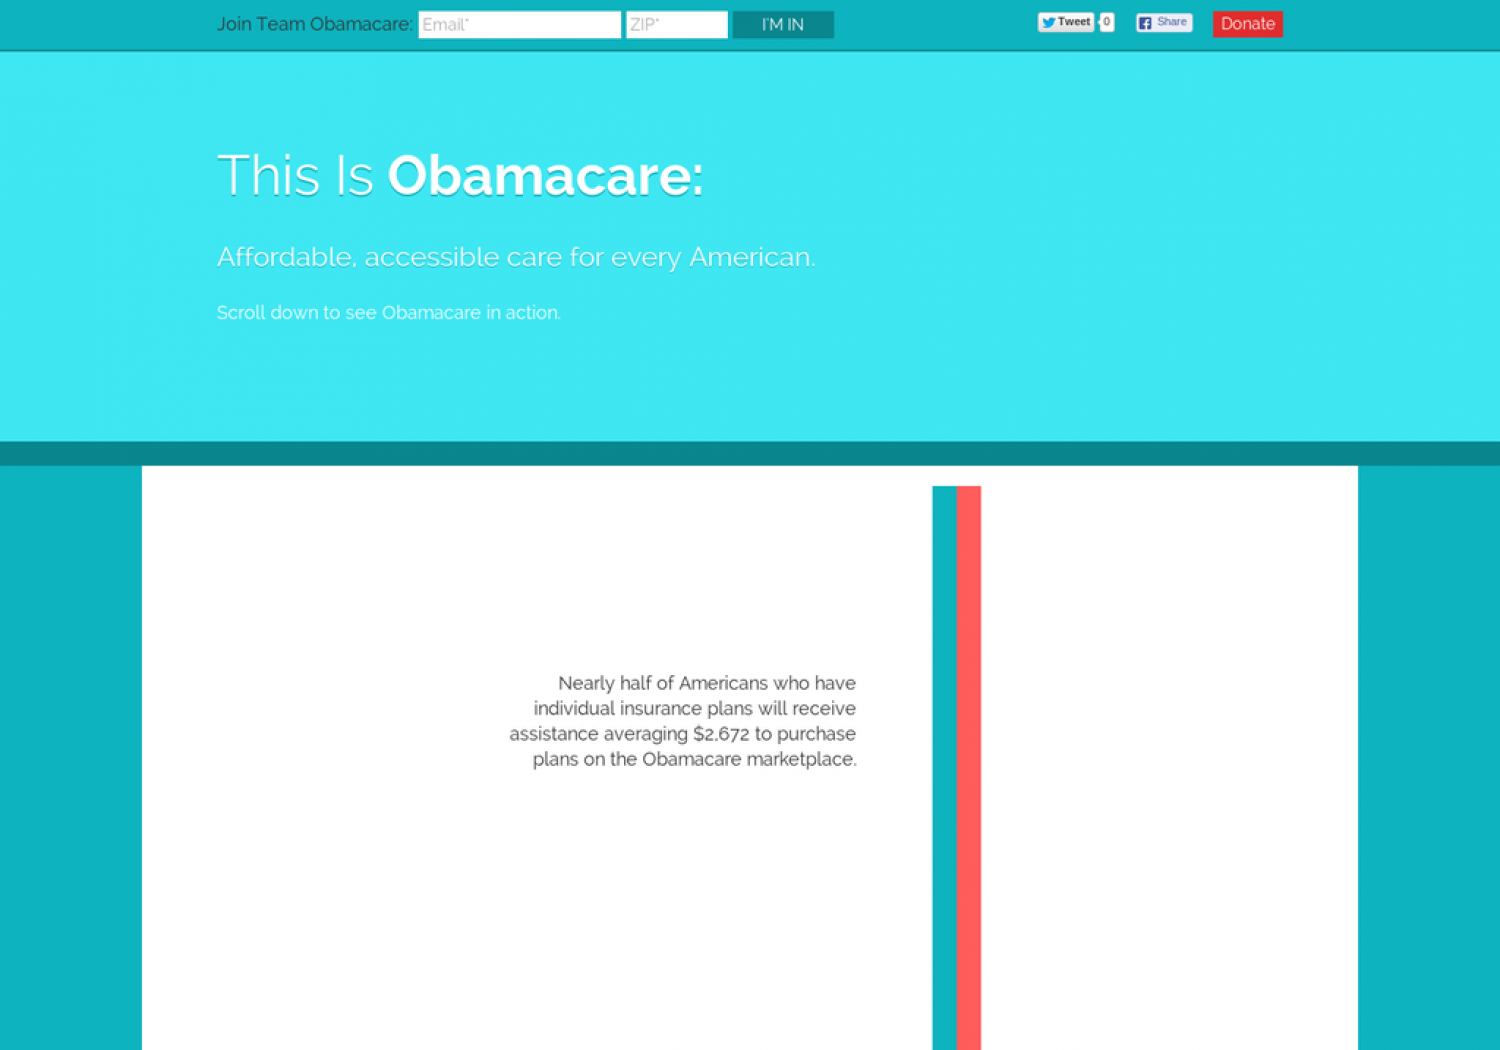 This Is Obamacare Infographic